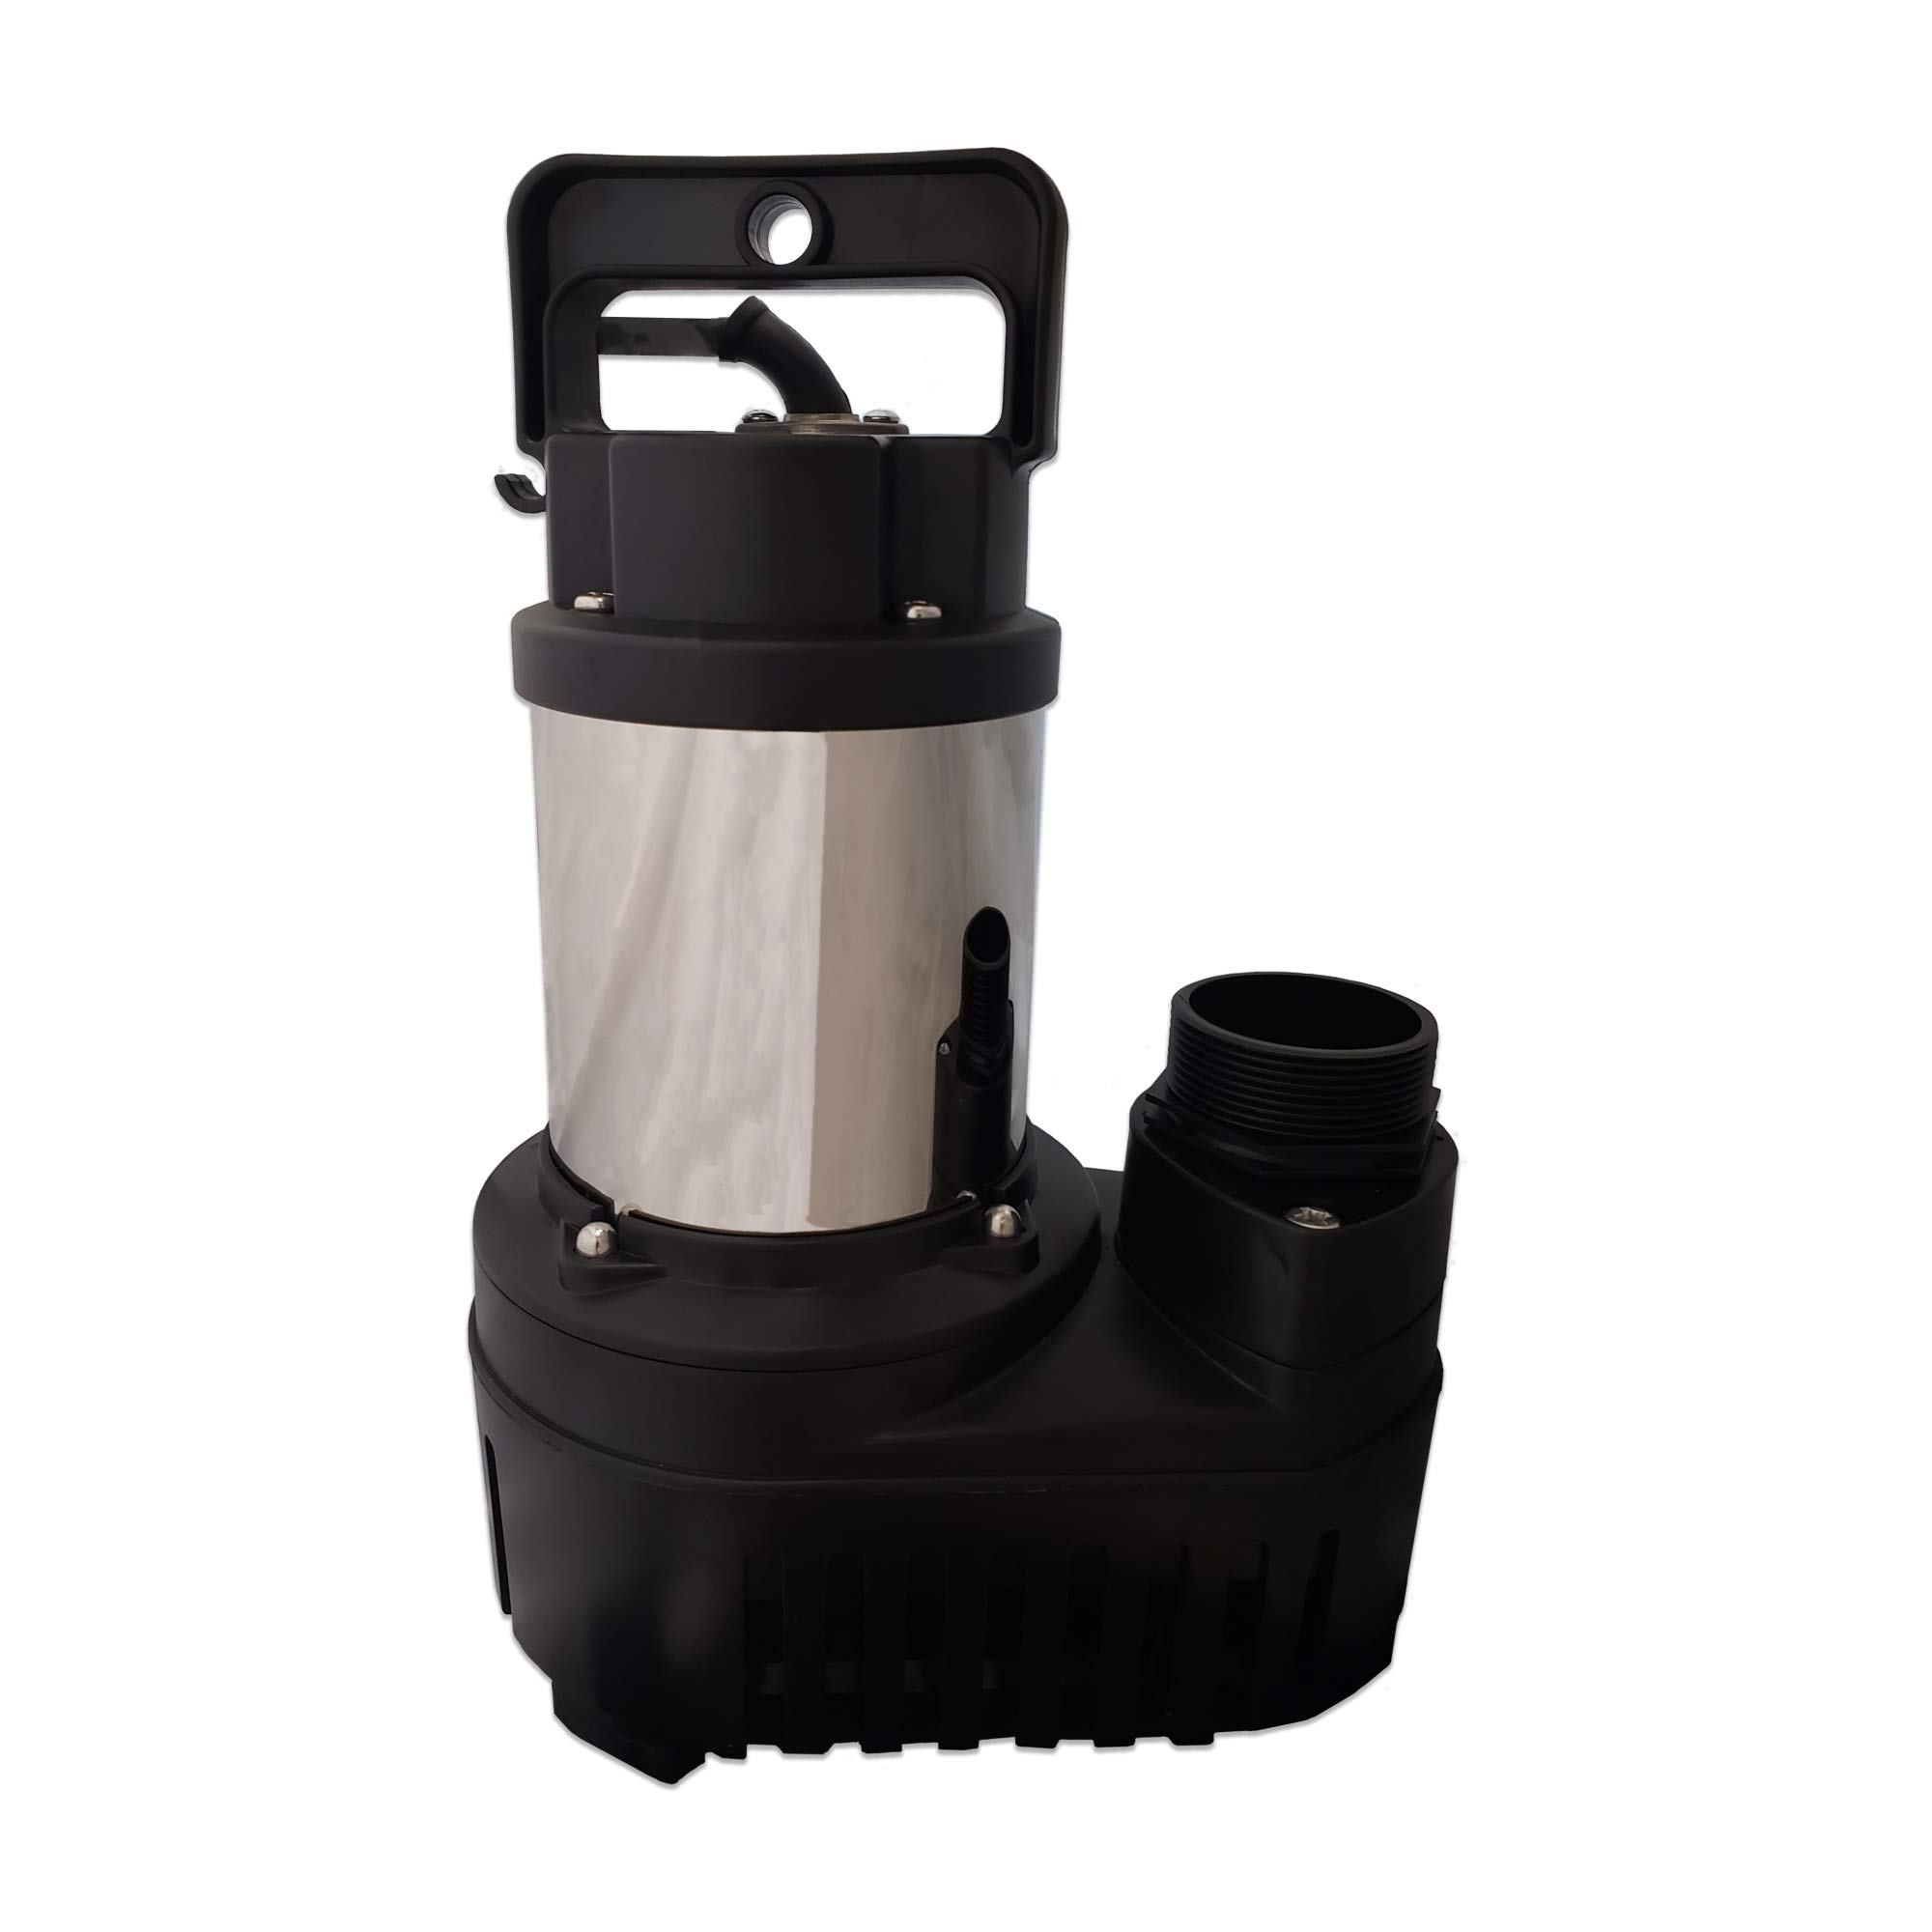 HALF OFF PONDS Pond Pulse 5,500 GPH Hybrid Drive Submersible Pump - Up to 5,500 GPH Max Flow by HALF OFF PONDS